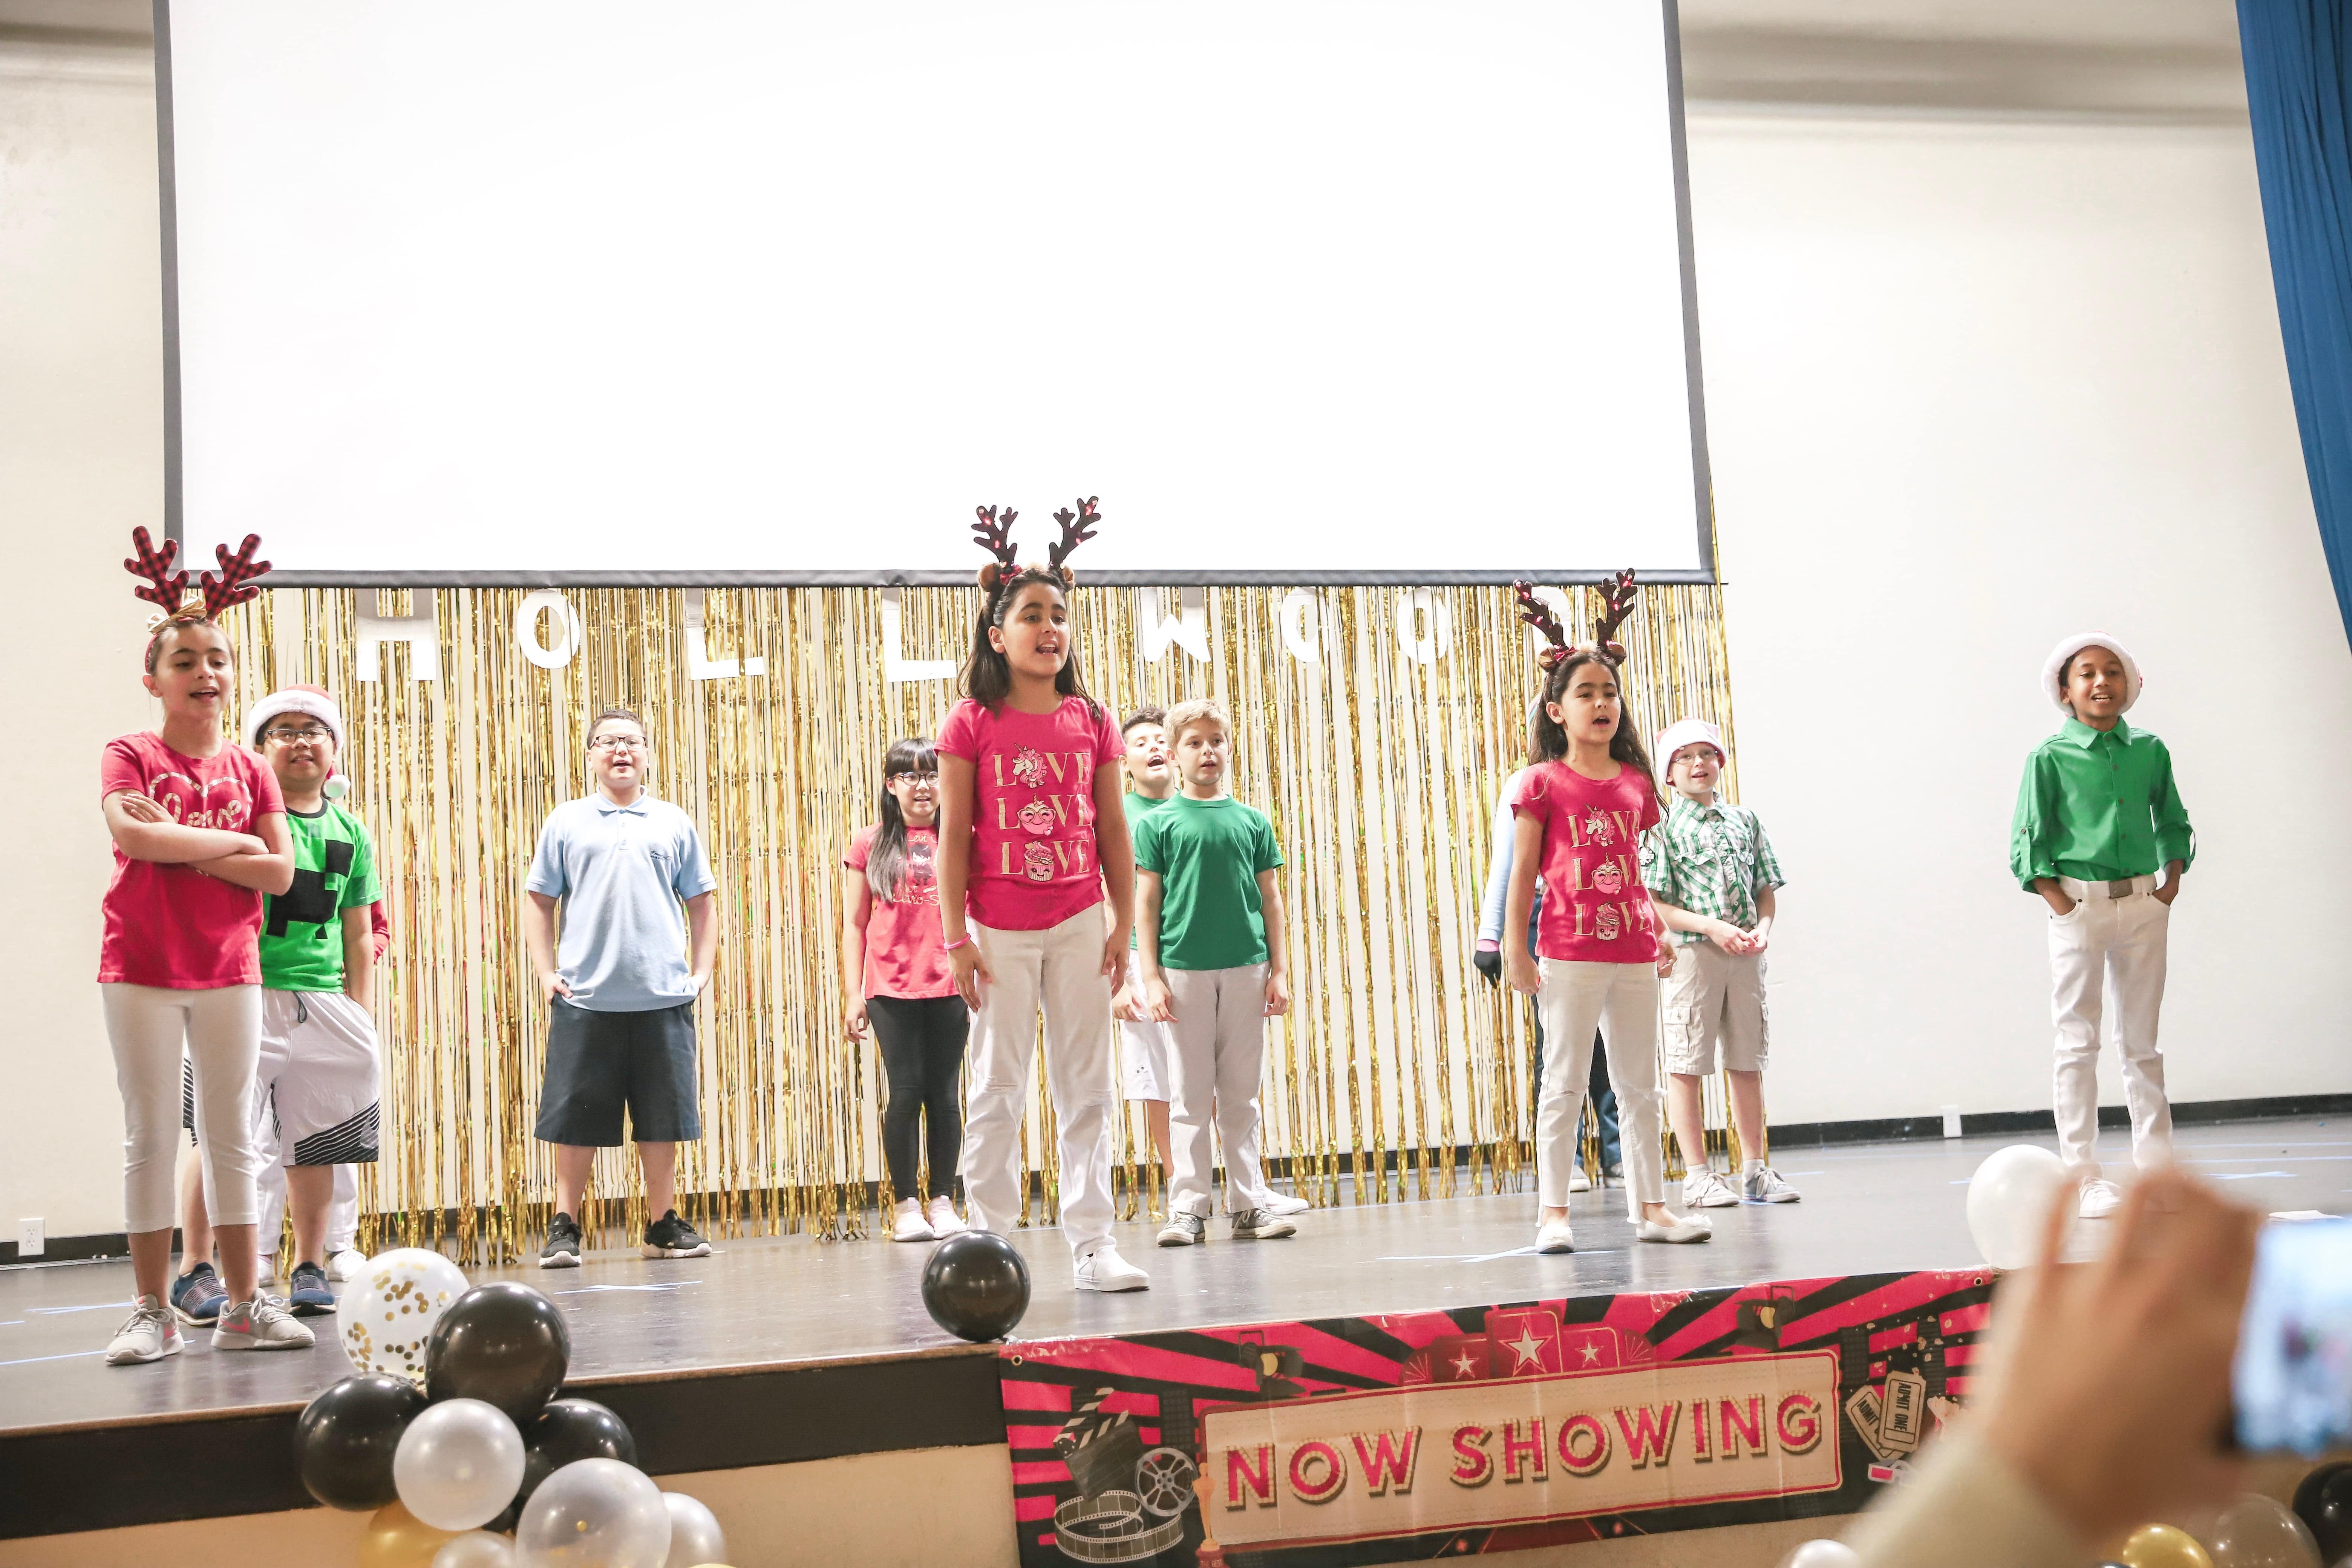 Winter Show Image number 11